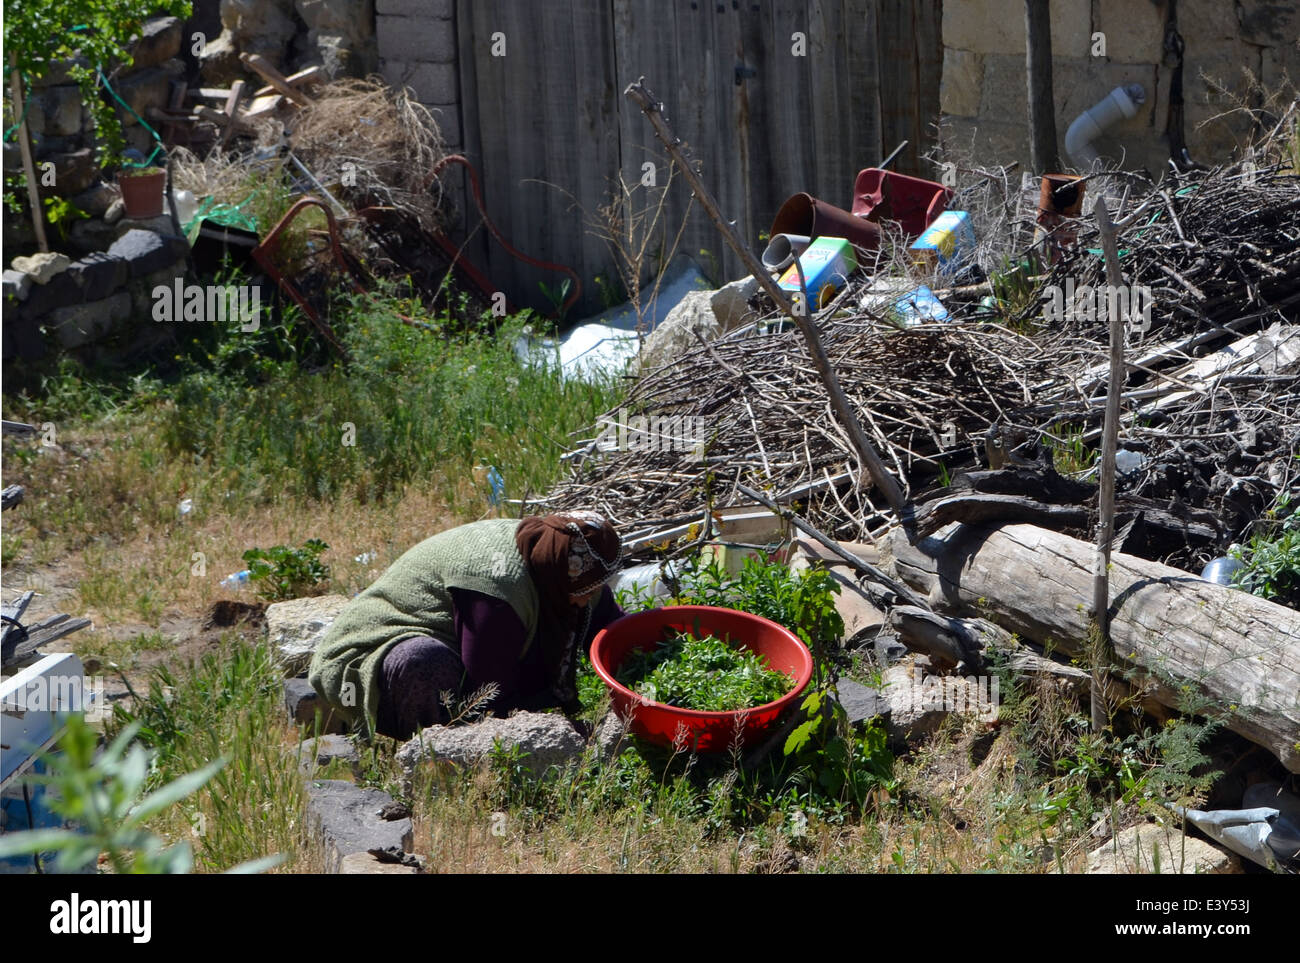 An elderly lady tends the produce of some run down housing in Capadoccia.Central Turkey. - Stock Image